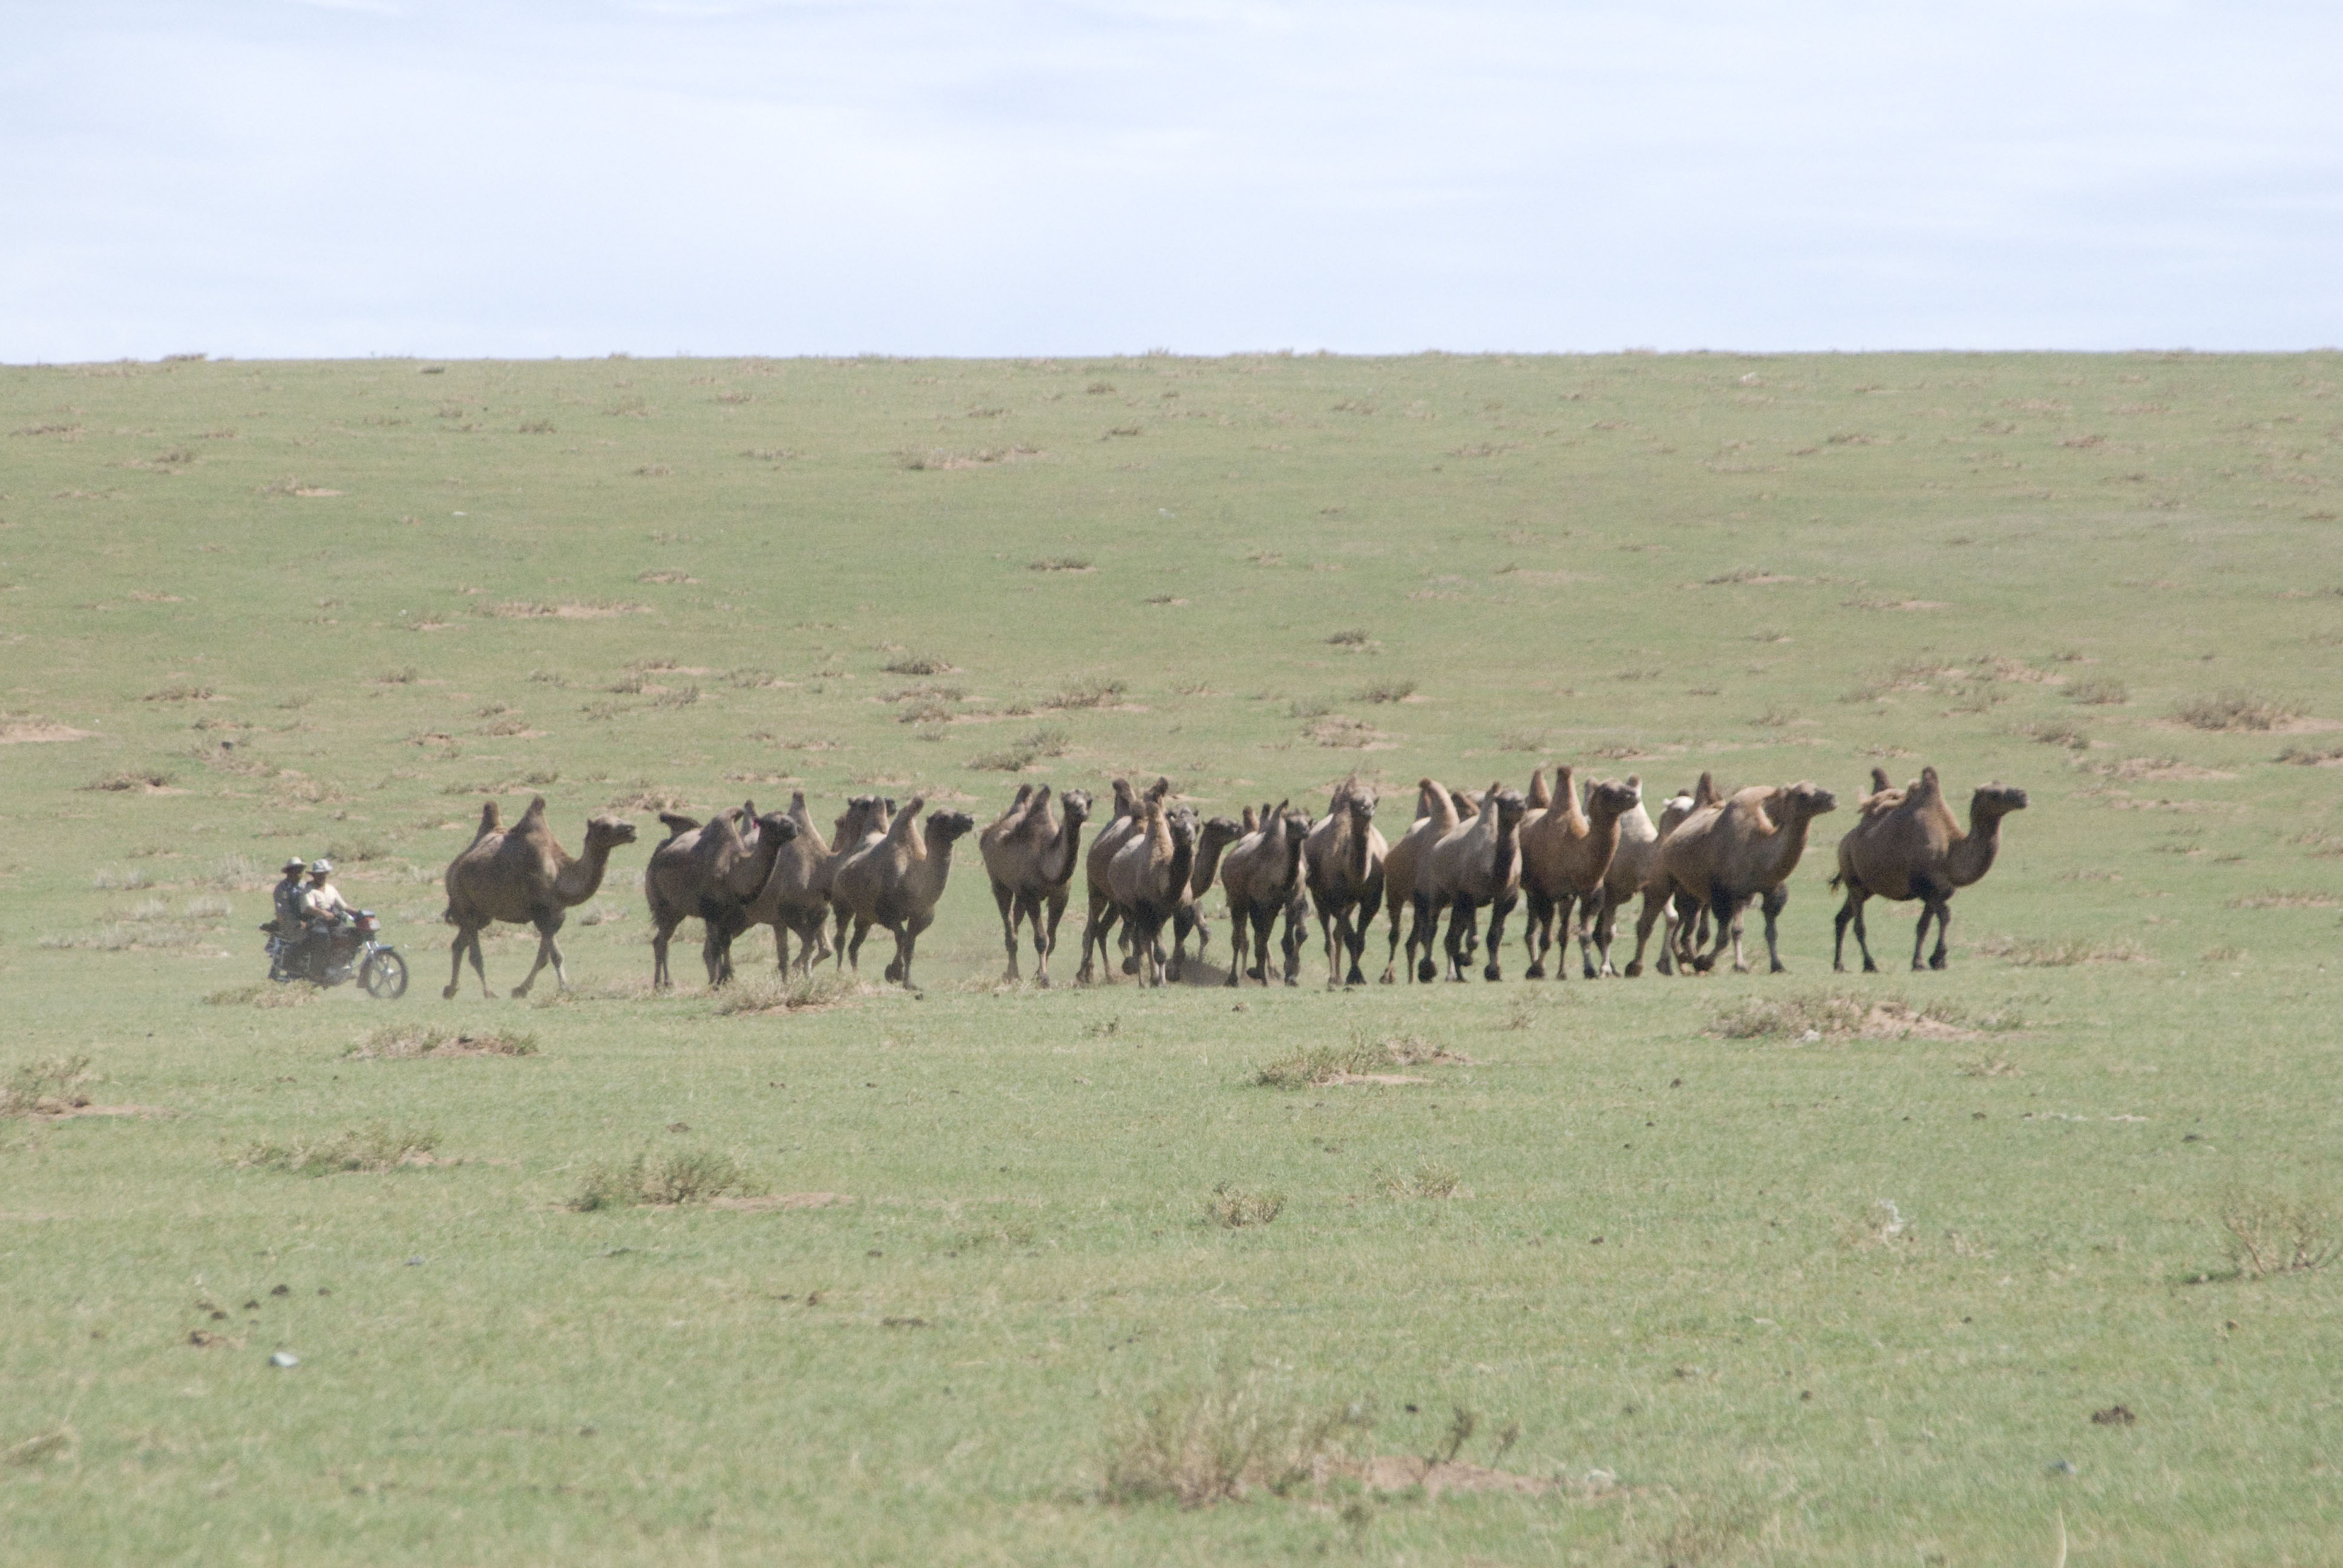 A somewhat more contemporary method of herding camels